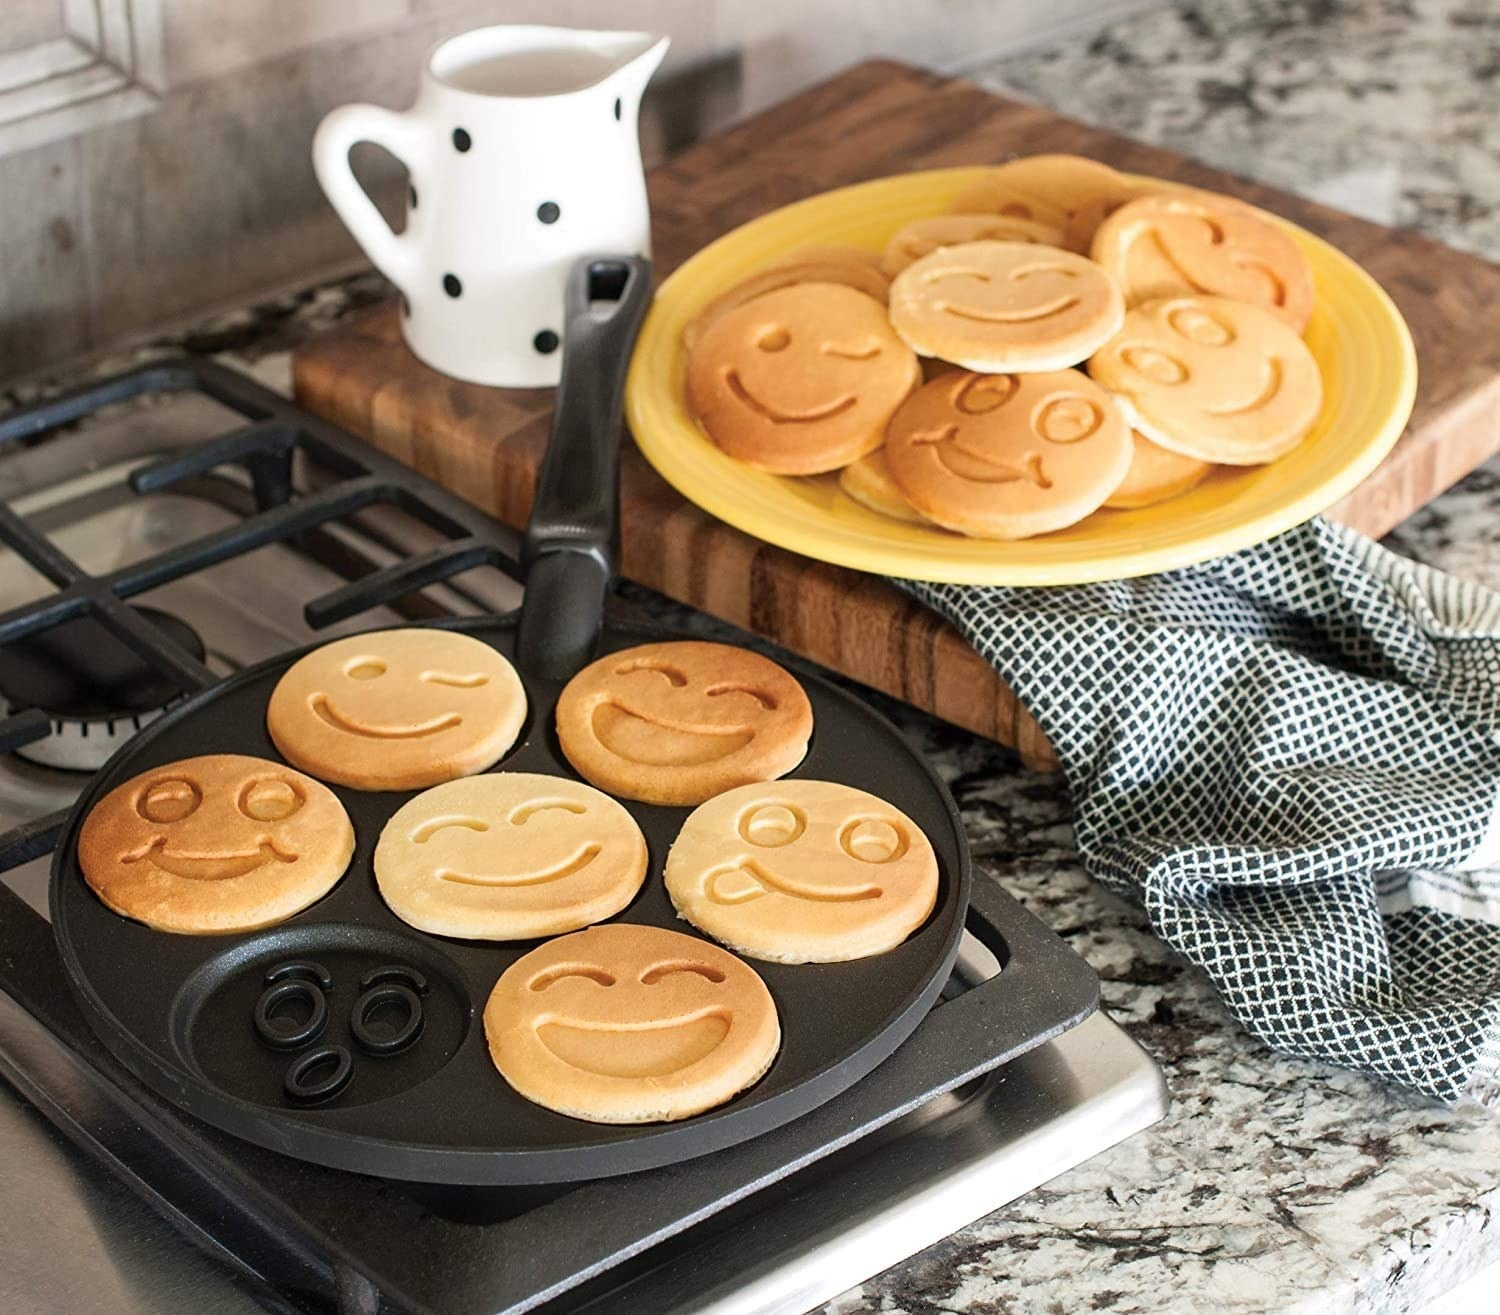 Smiley face pancakes on the griddle and on a plate